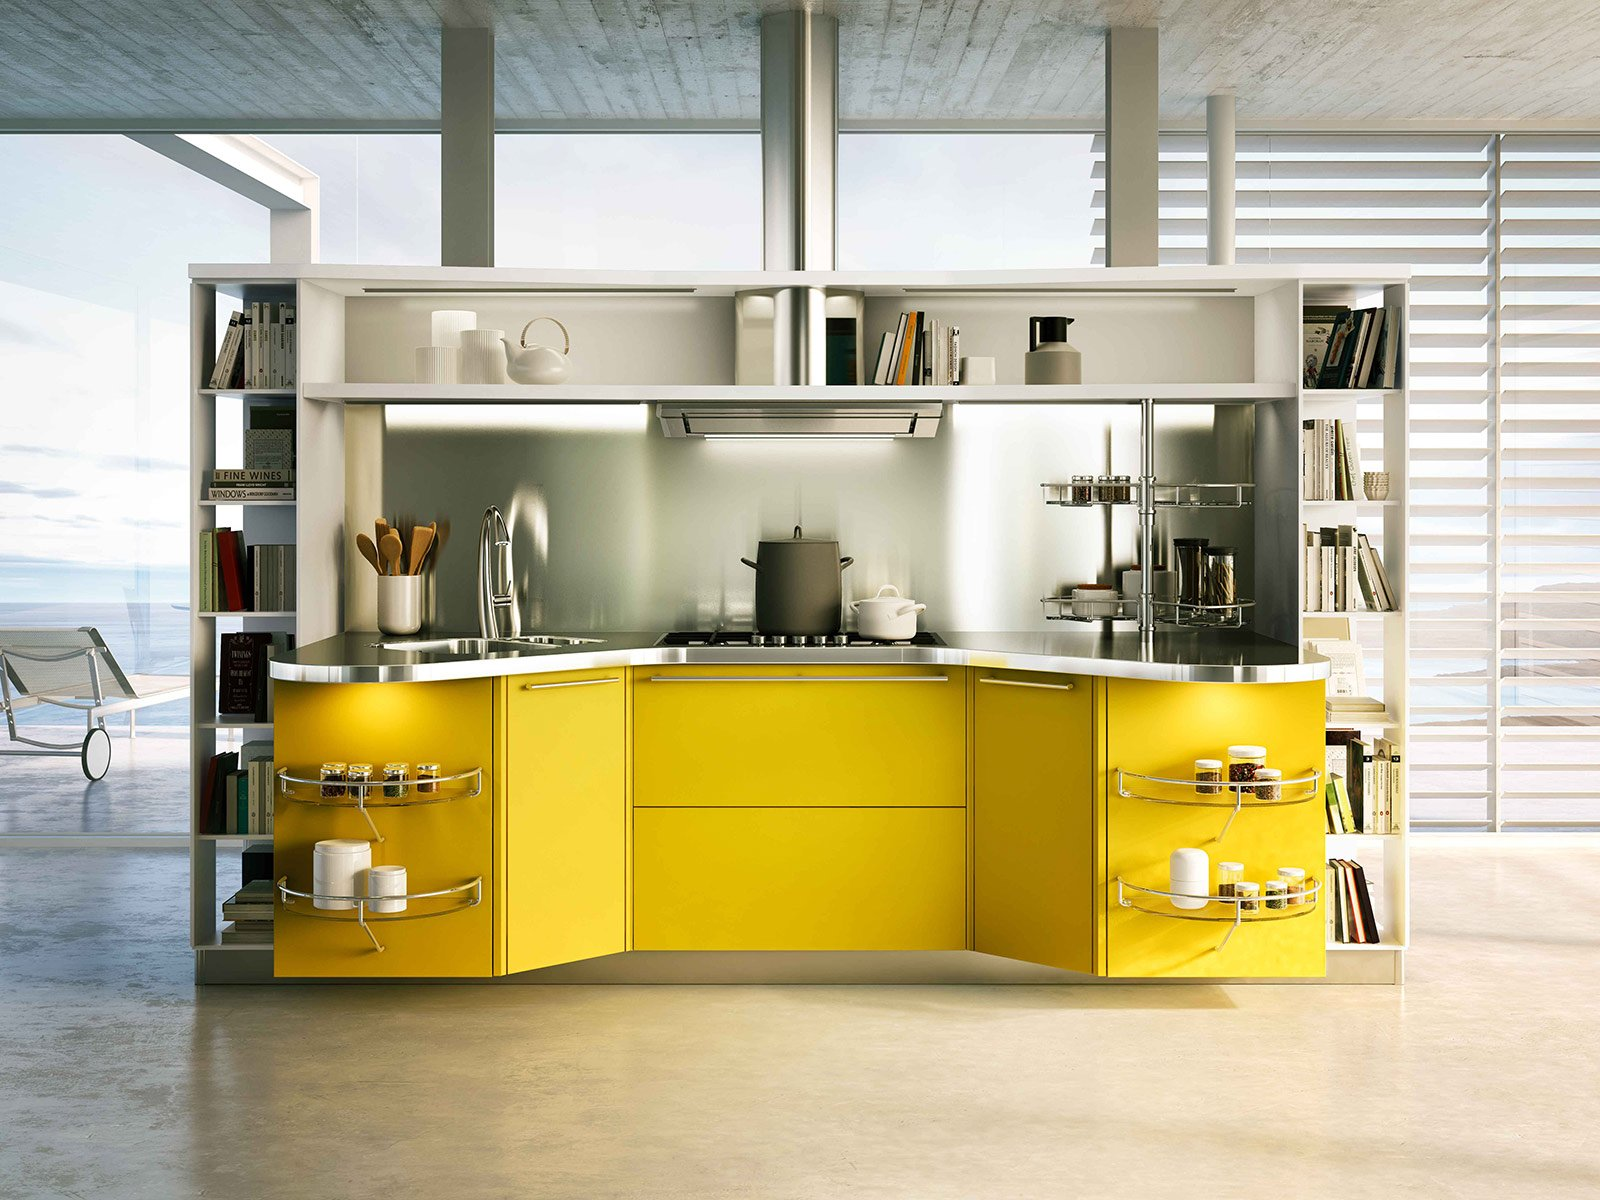 Cucine colorate come un quadro contemporaneo cose di casa for Disegni per la casa del merluzzo cape